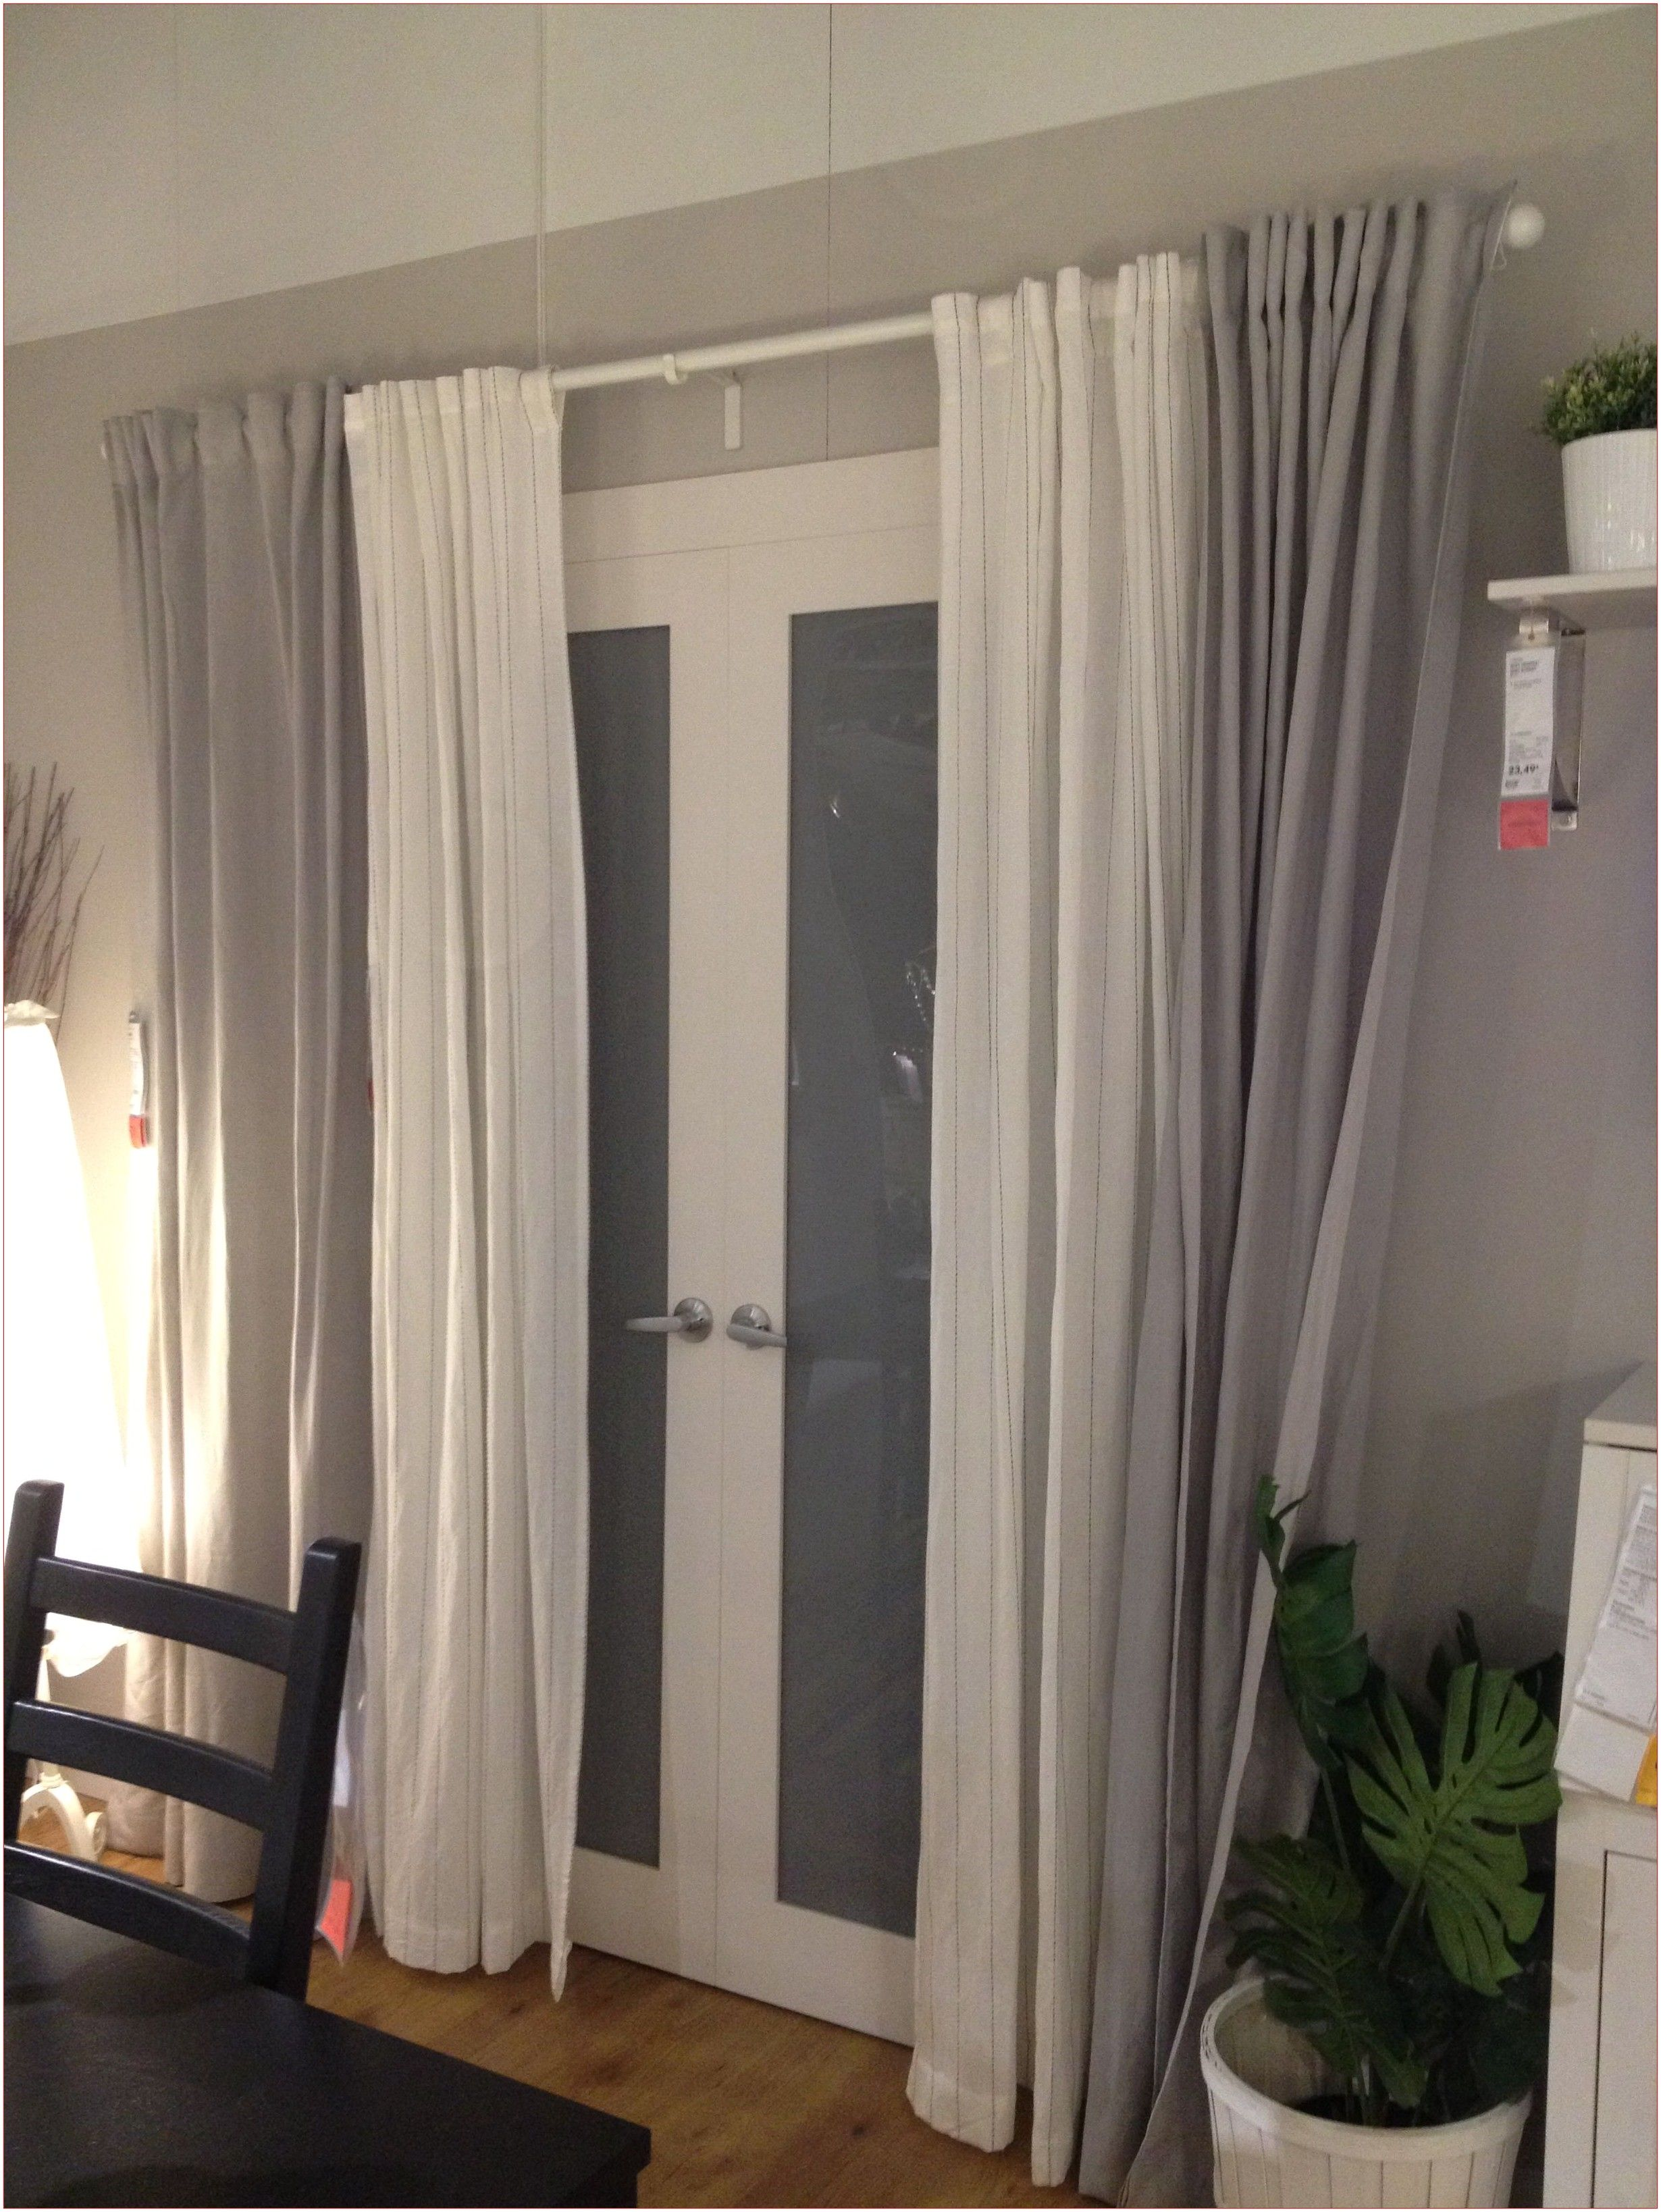 Drapes For Sliding Glass Doors Hang Curtains In 2020 Sliding Glass Door Curtains Door Coverings Patio Door Coverings